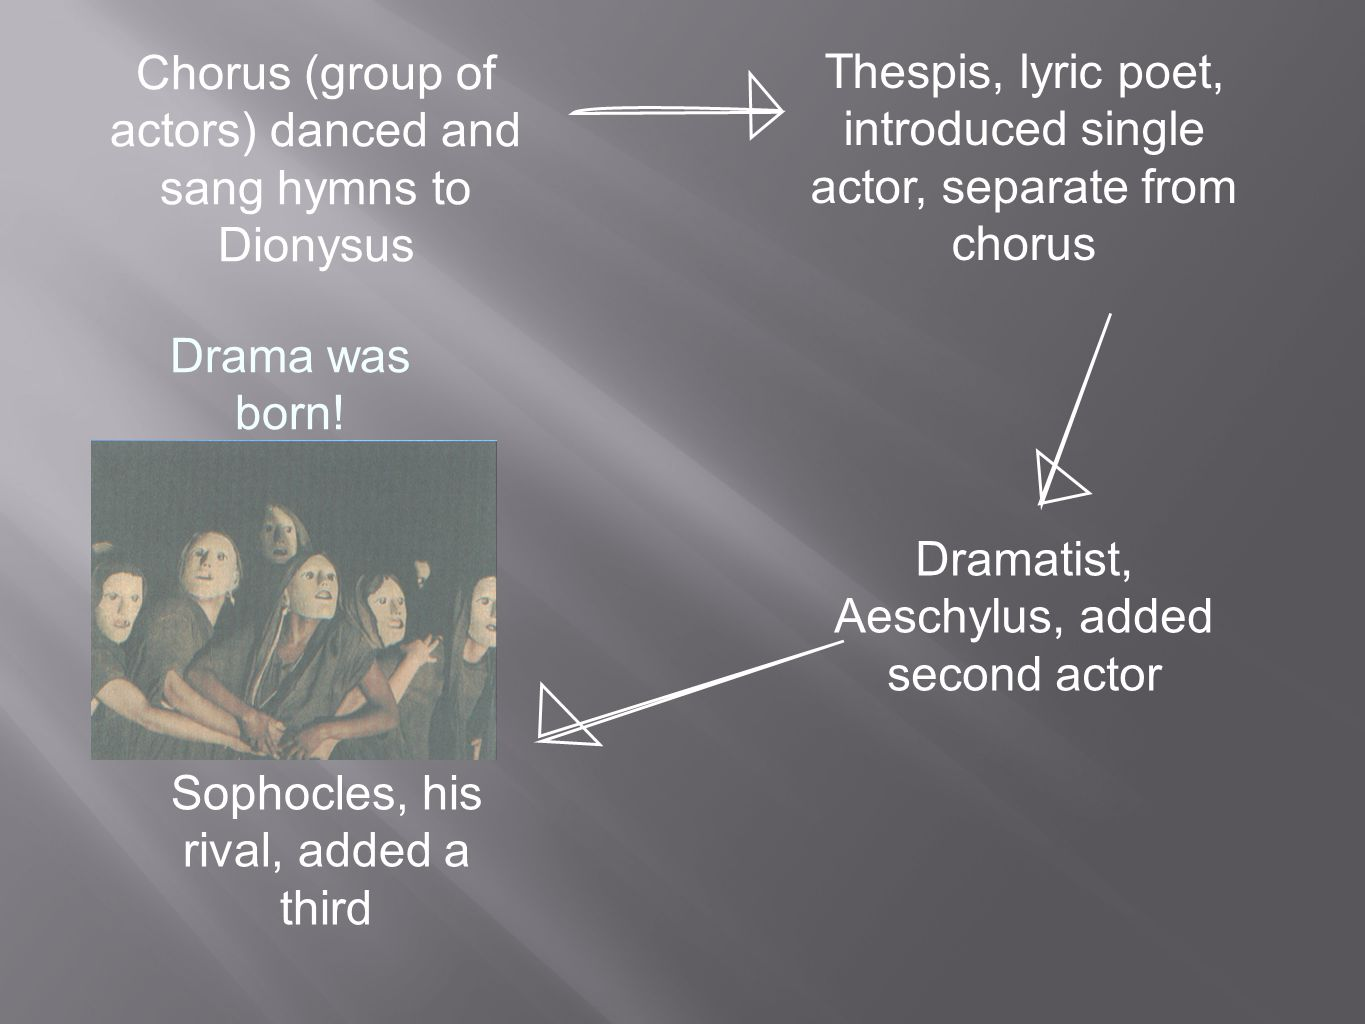 Chorus (group of actors) danced and sang hymns to Dionysus Thespis, lyric poet, introduced single actor, separate from chorus Dramatist, Aeschylus, added second actor Sophocles, his rival, added a third Drama was born!